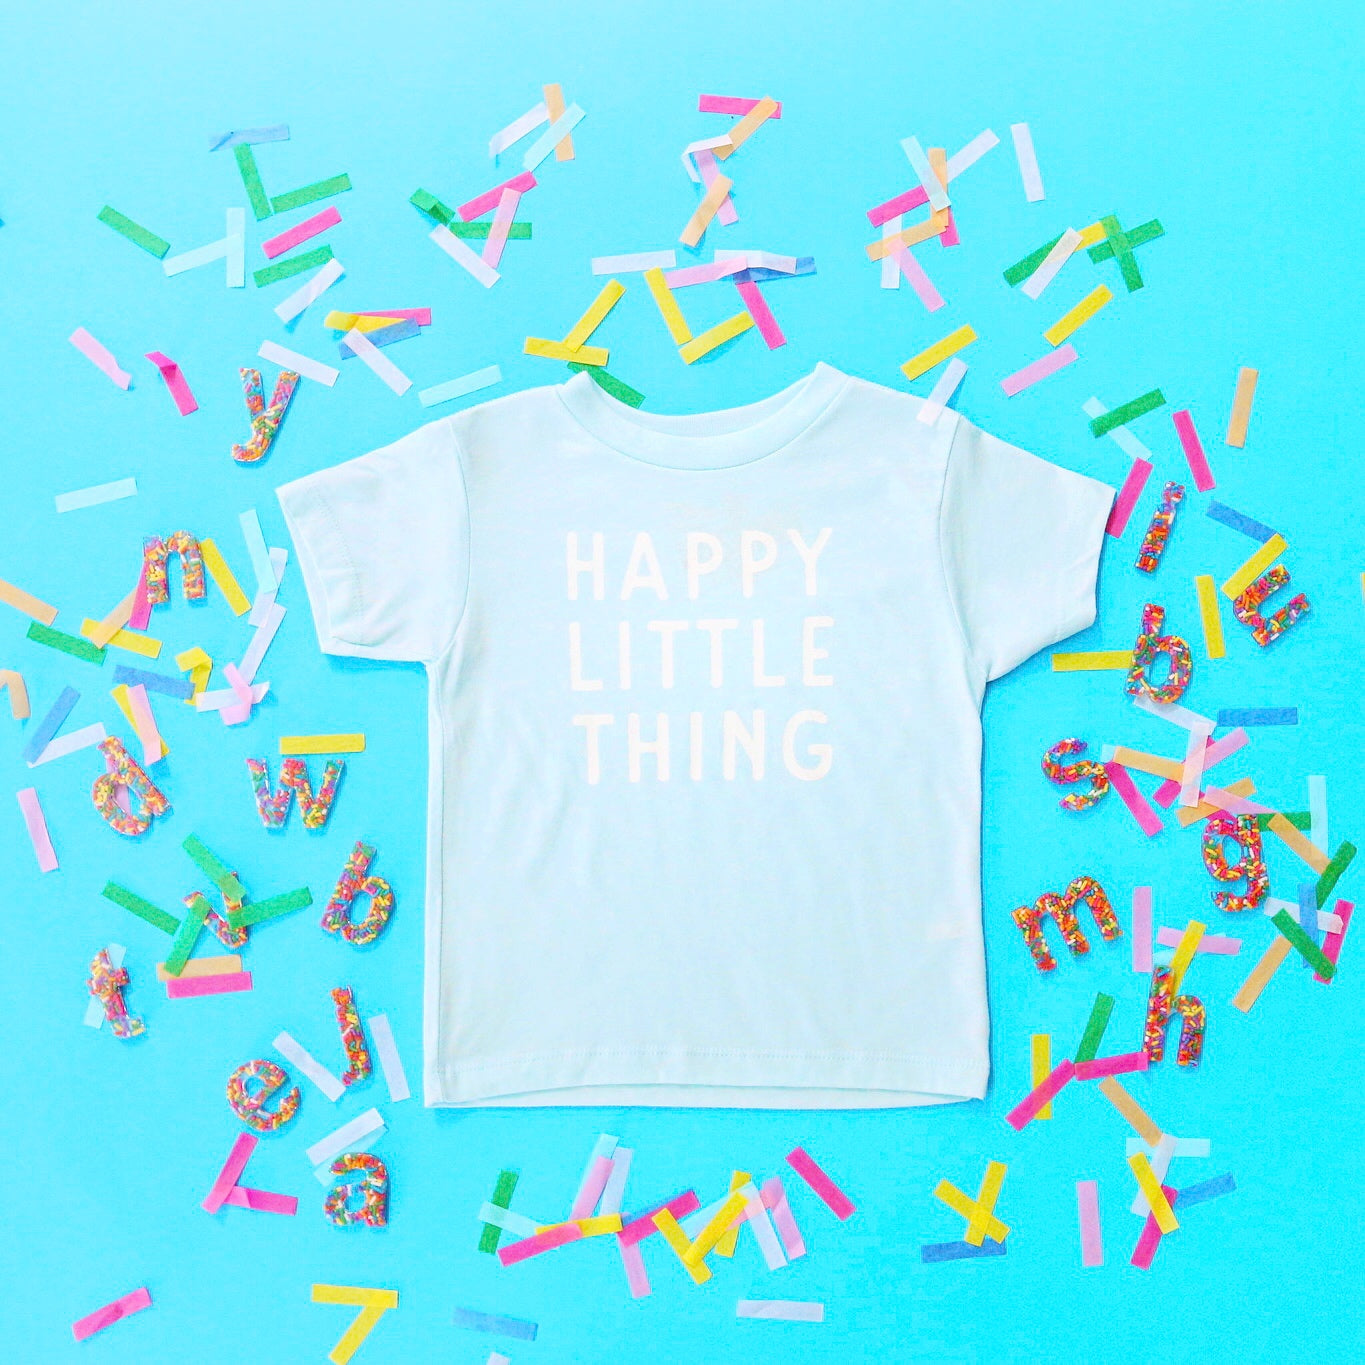 Happy Little Thing Tee, Ice Blue.